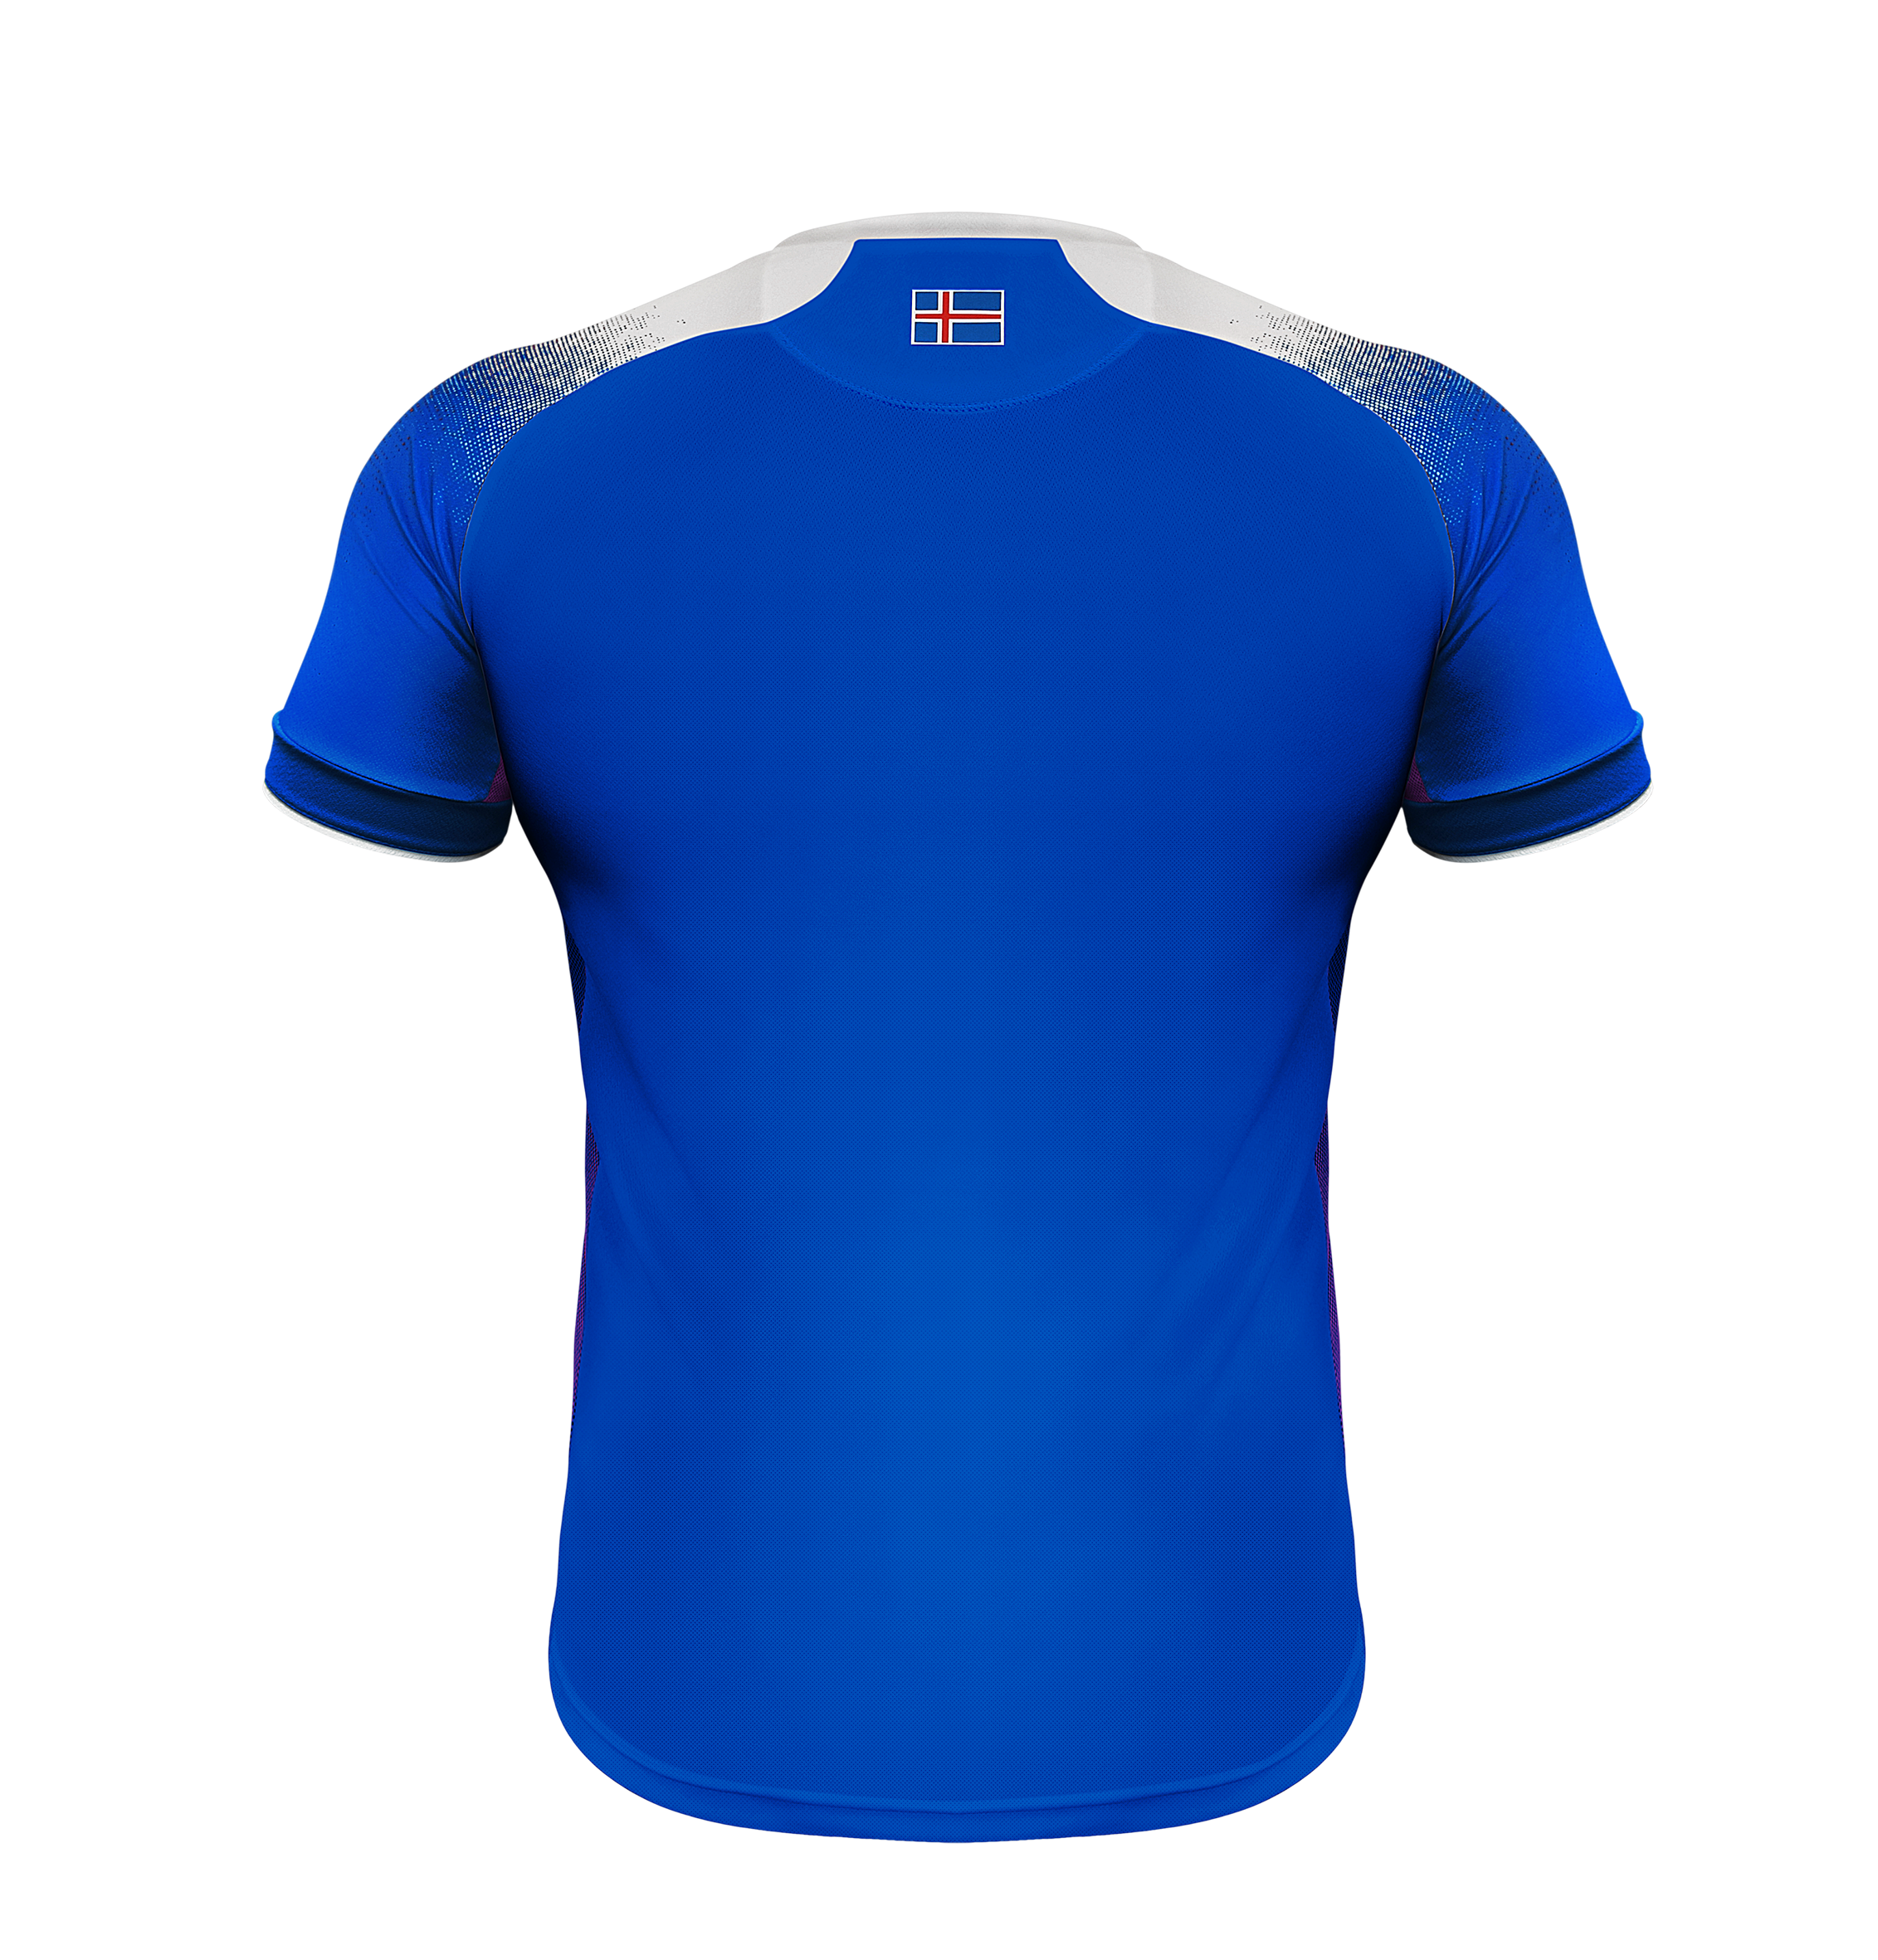 b497eb907 Iceland World Cup 2018 Official Home Jersey – Errea